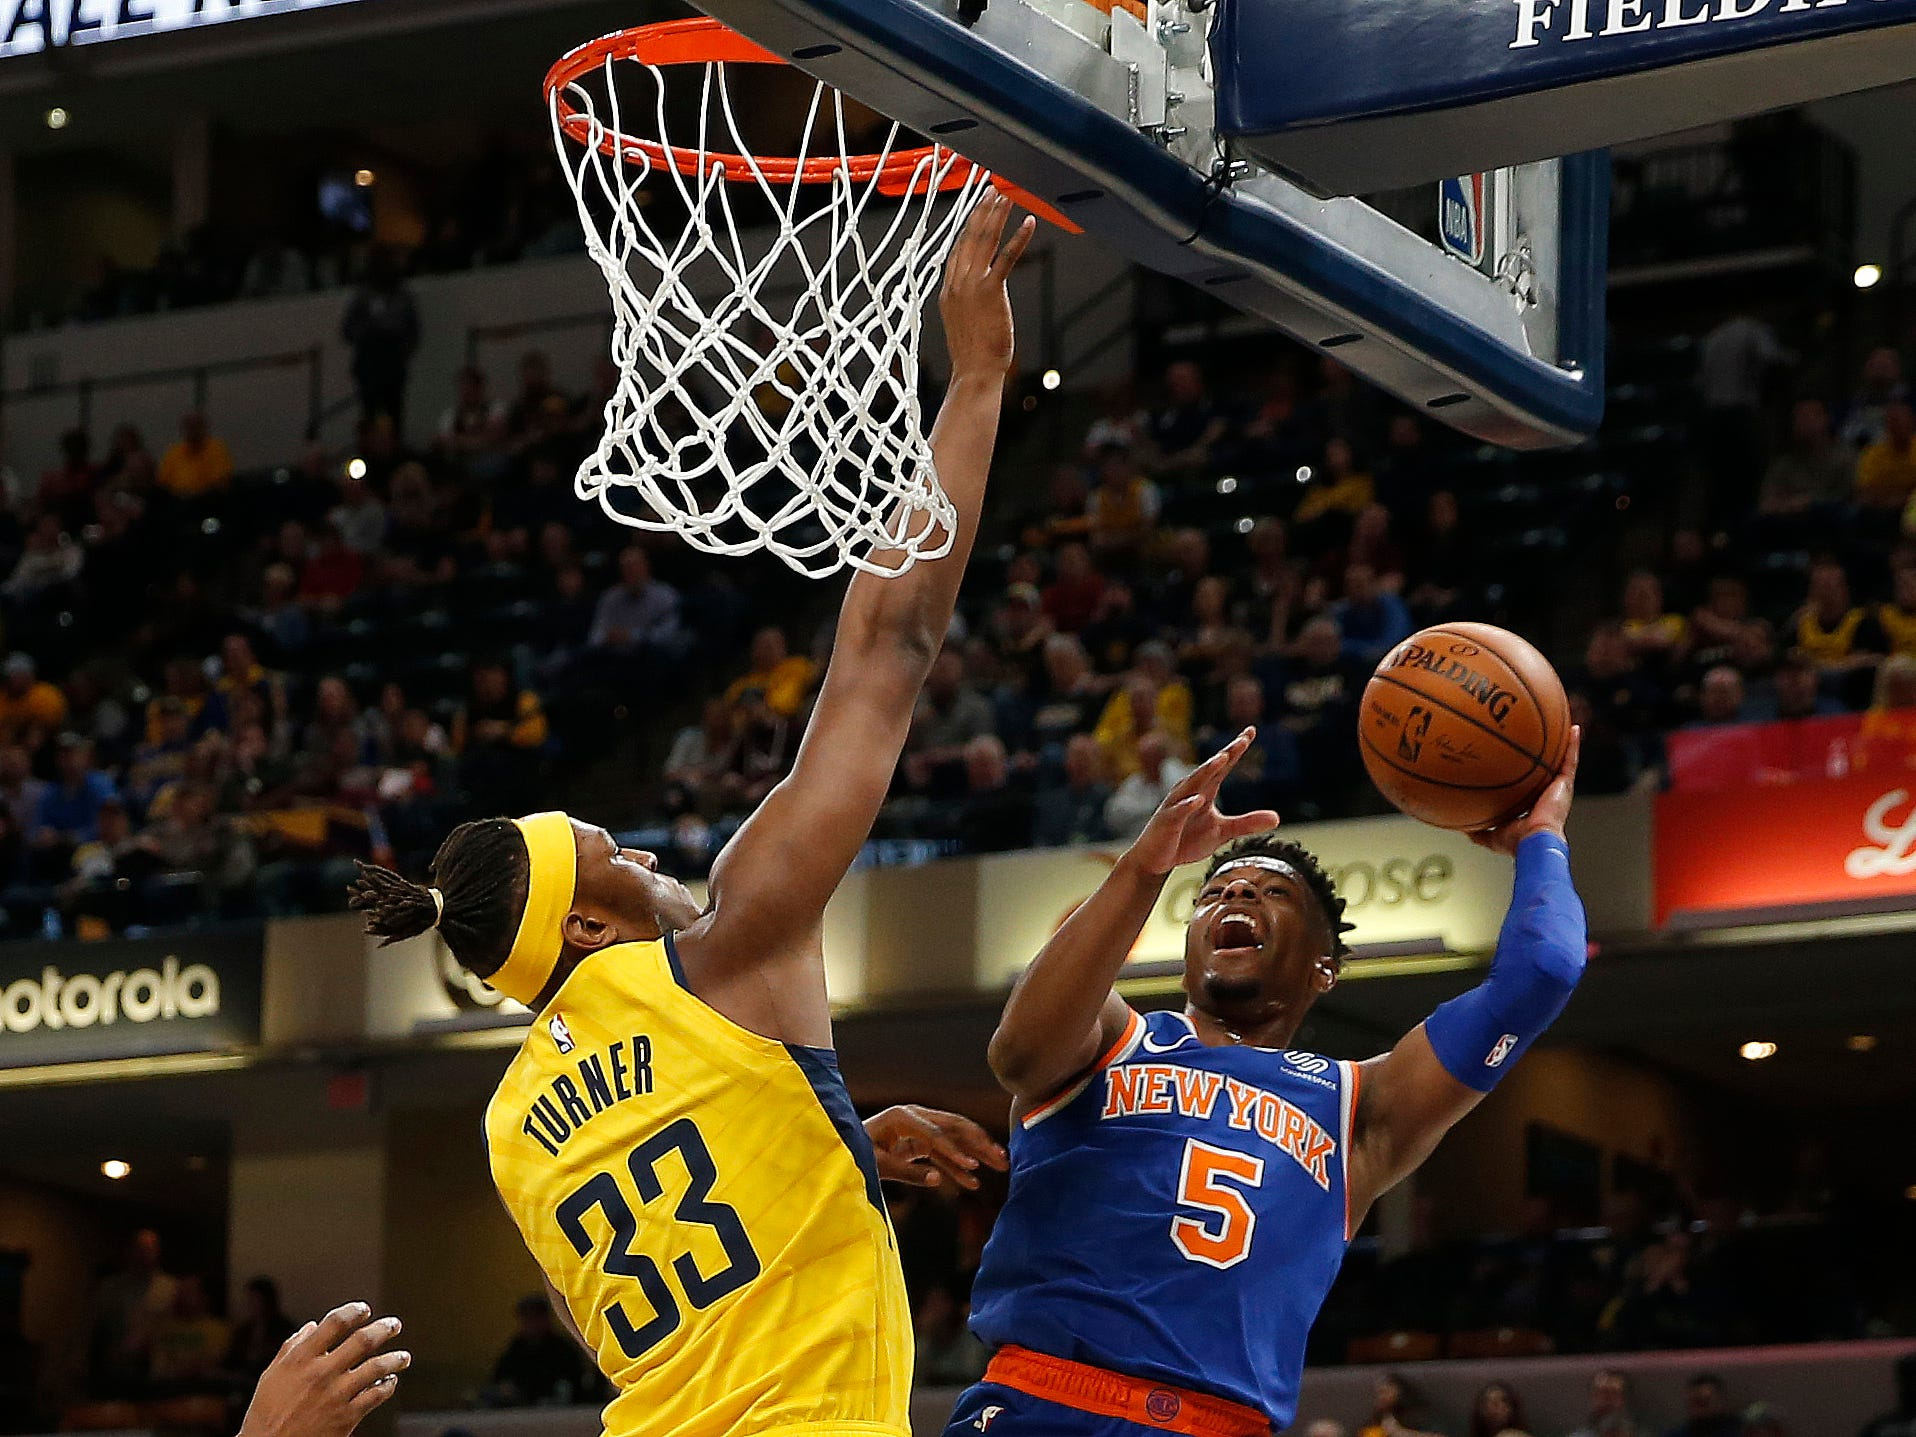 Mar 12, 2019; Indianapolis, IN, USA; New York Knicks guard Dennis Smith Jr. (5) takes a shot against Indiana Pacers center Myles Turner (33) during the first quarter at Bankers Life Fieldhouse.